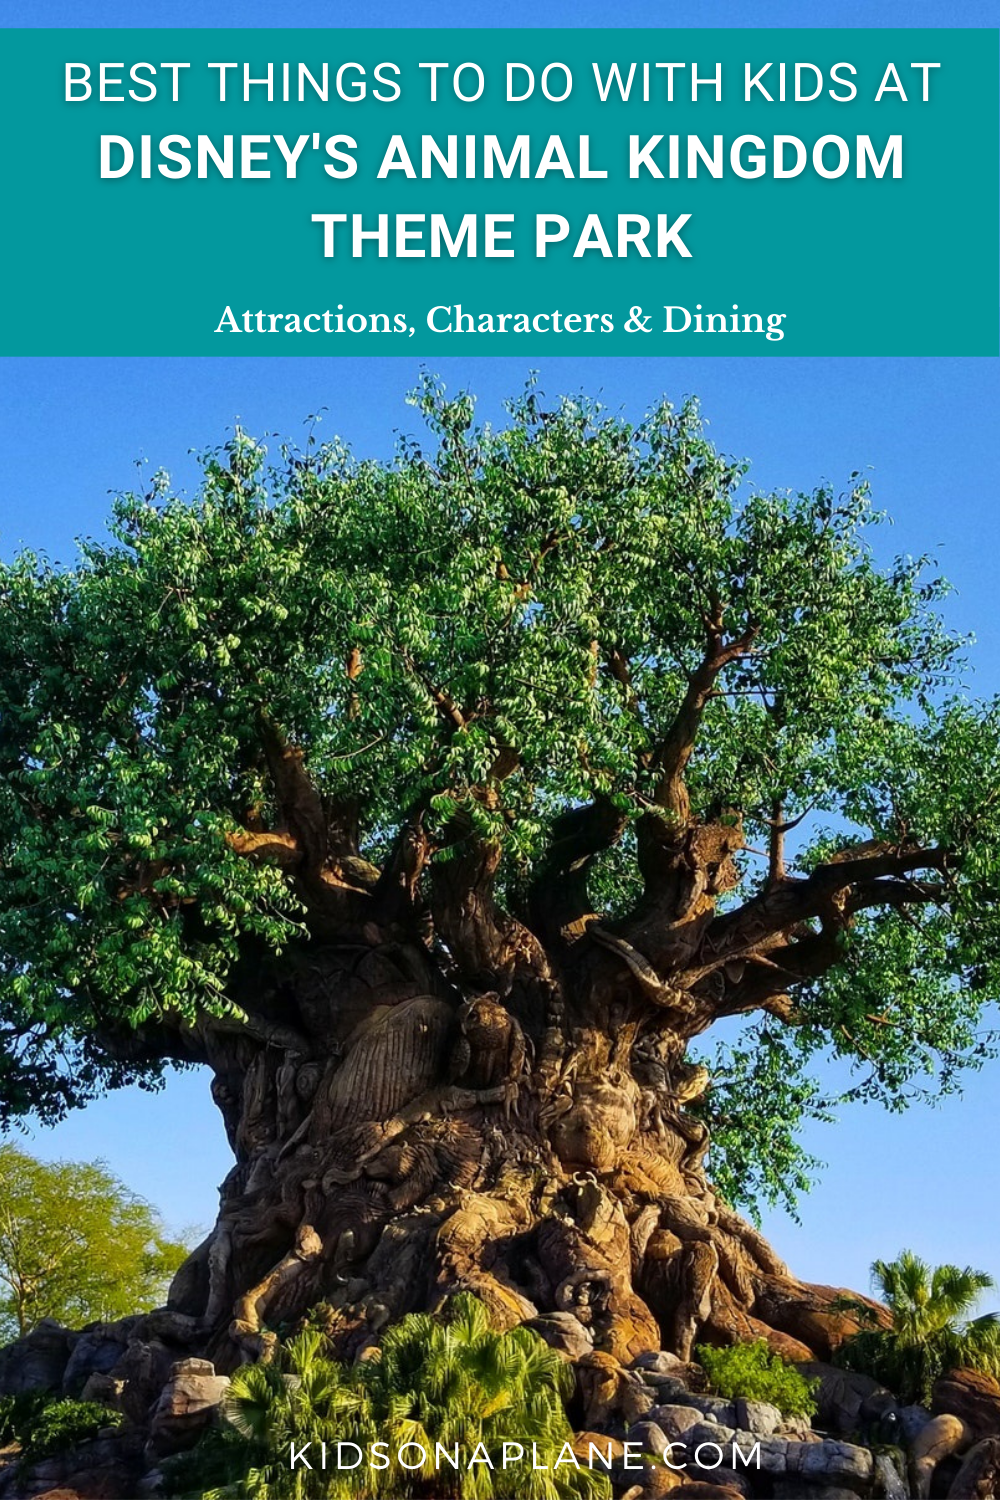 Disney World Animal Kingdom Theme Park with Kids - Best Things to Do - Rides Shows Characters and Dining